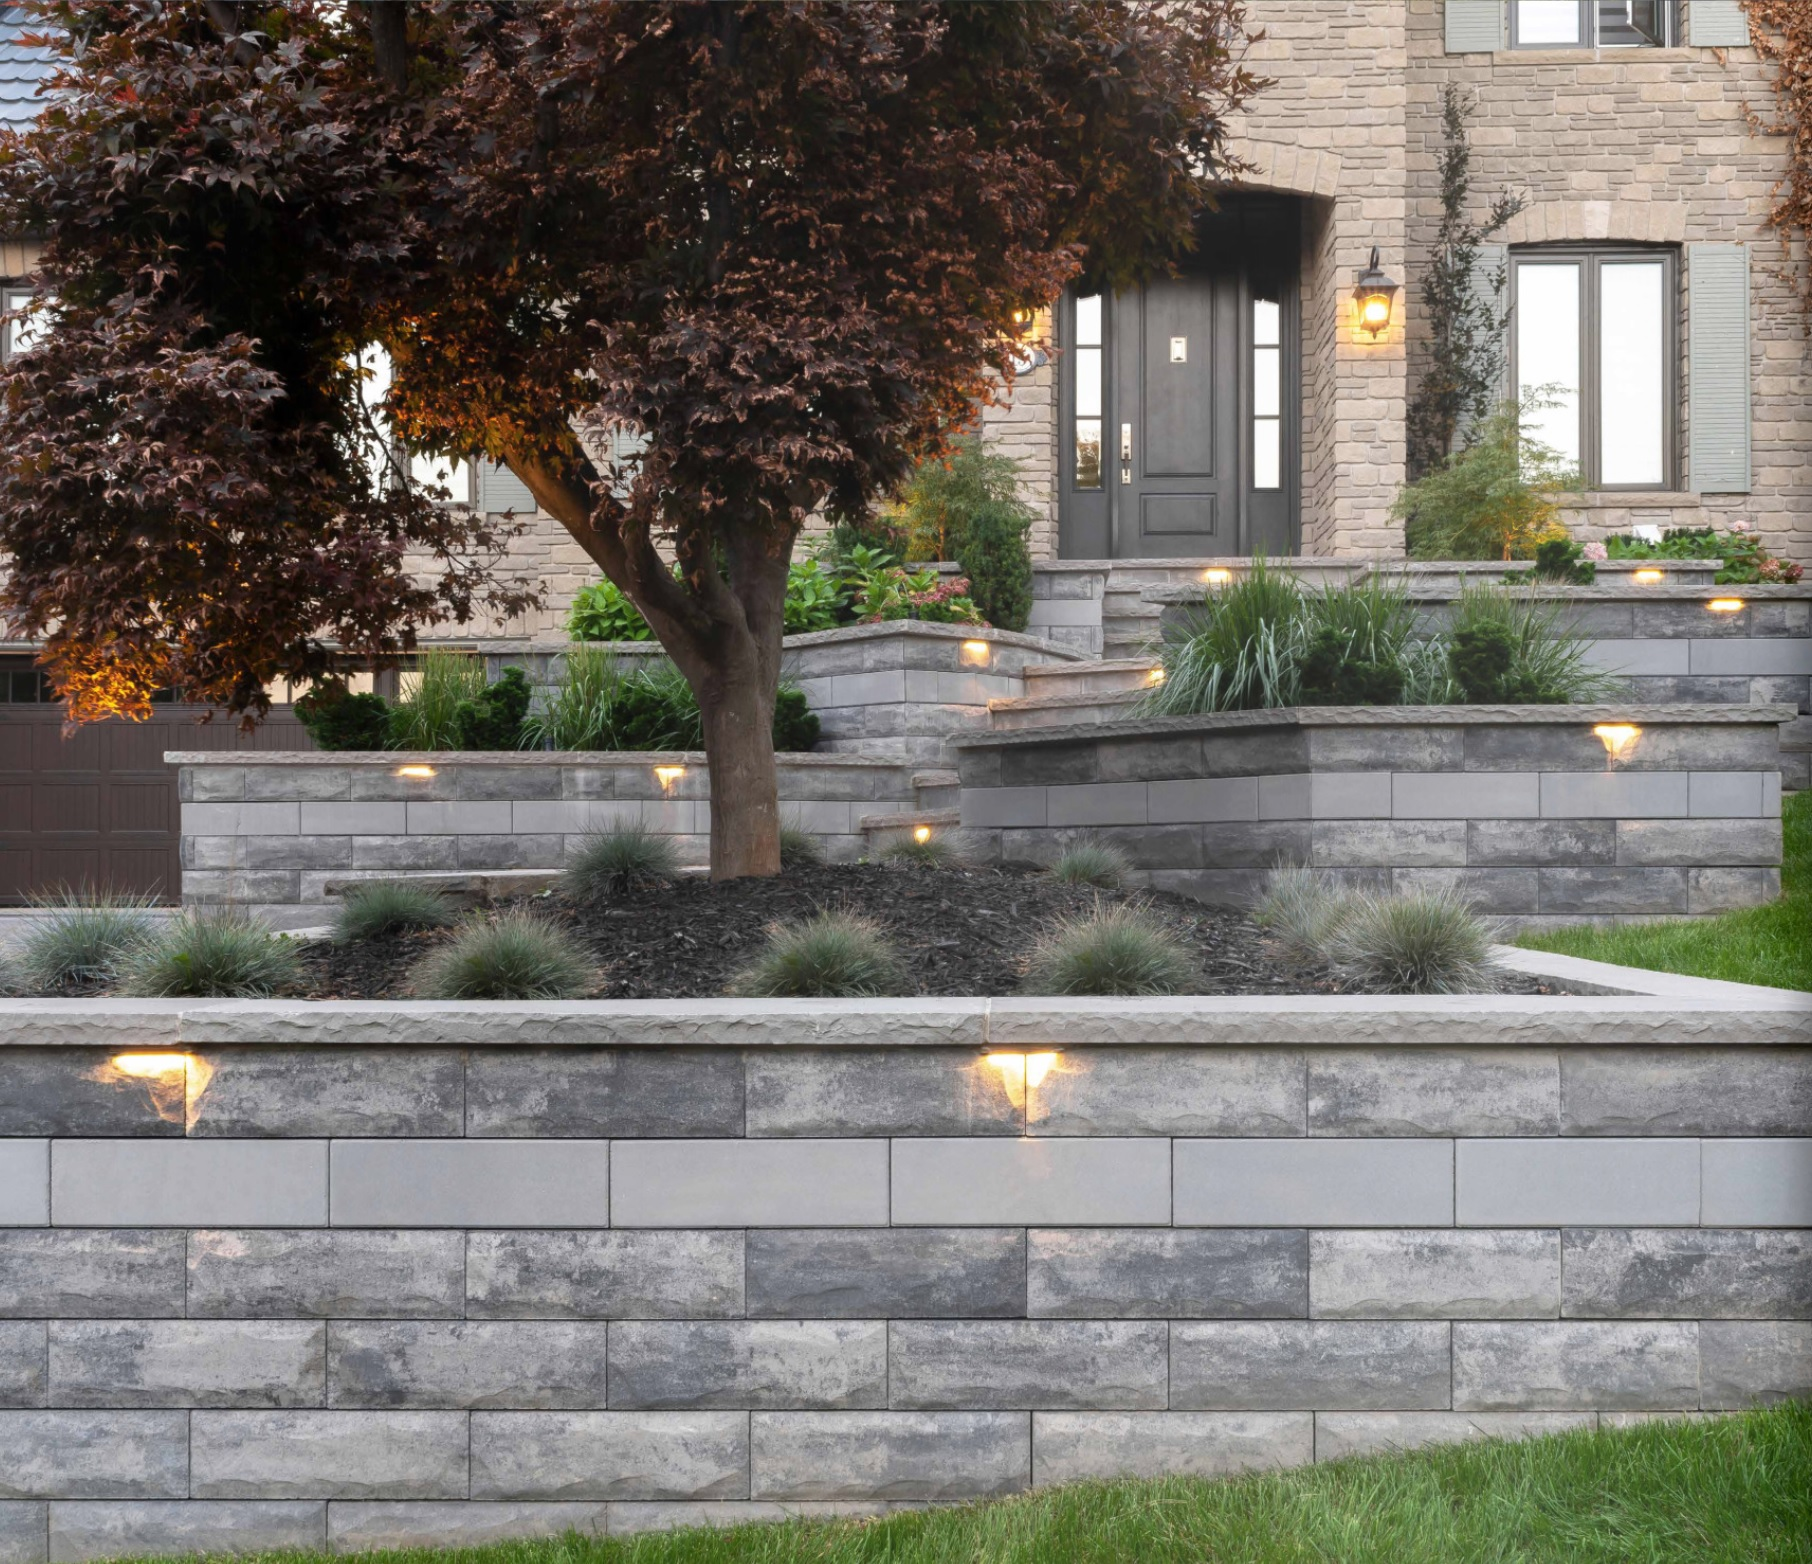 Landscape lighting in Shelby Township, Michigan